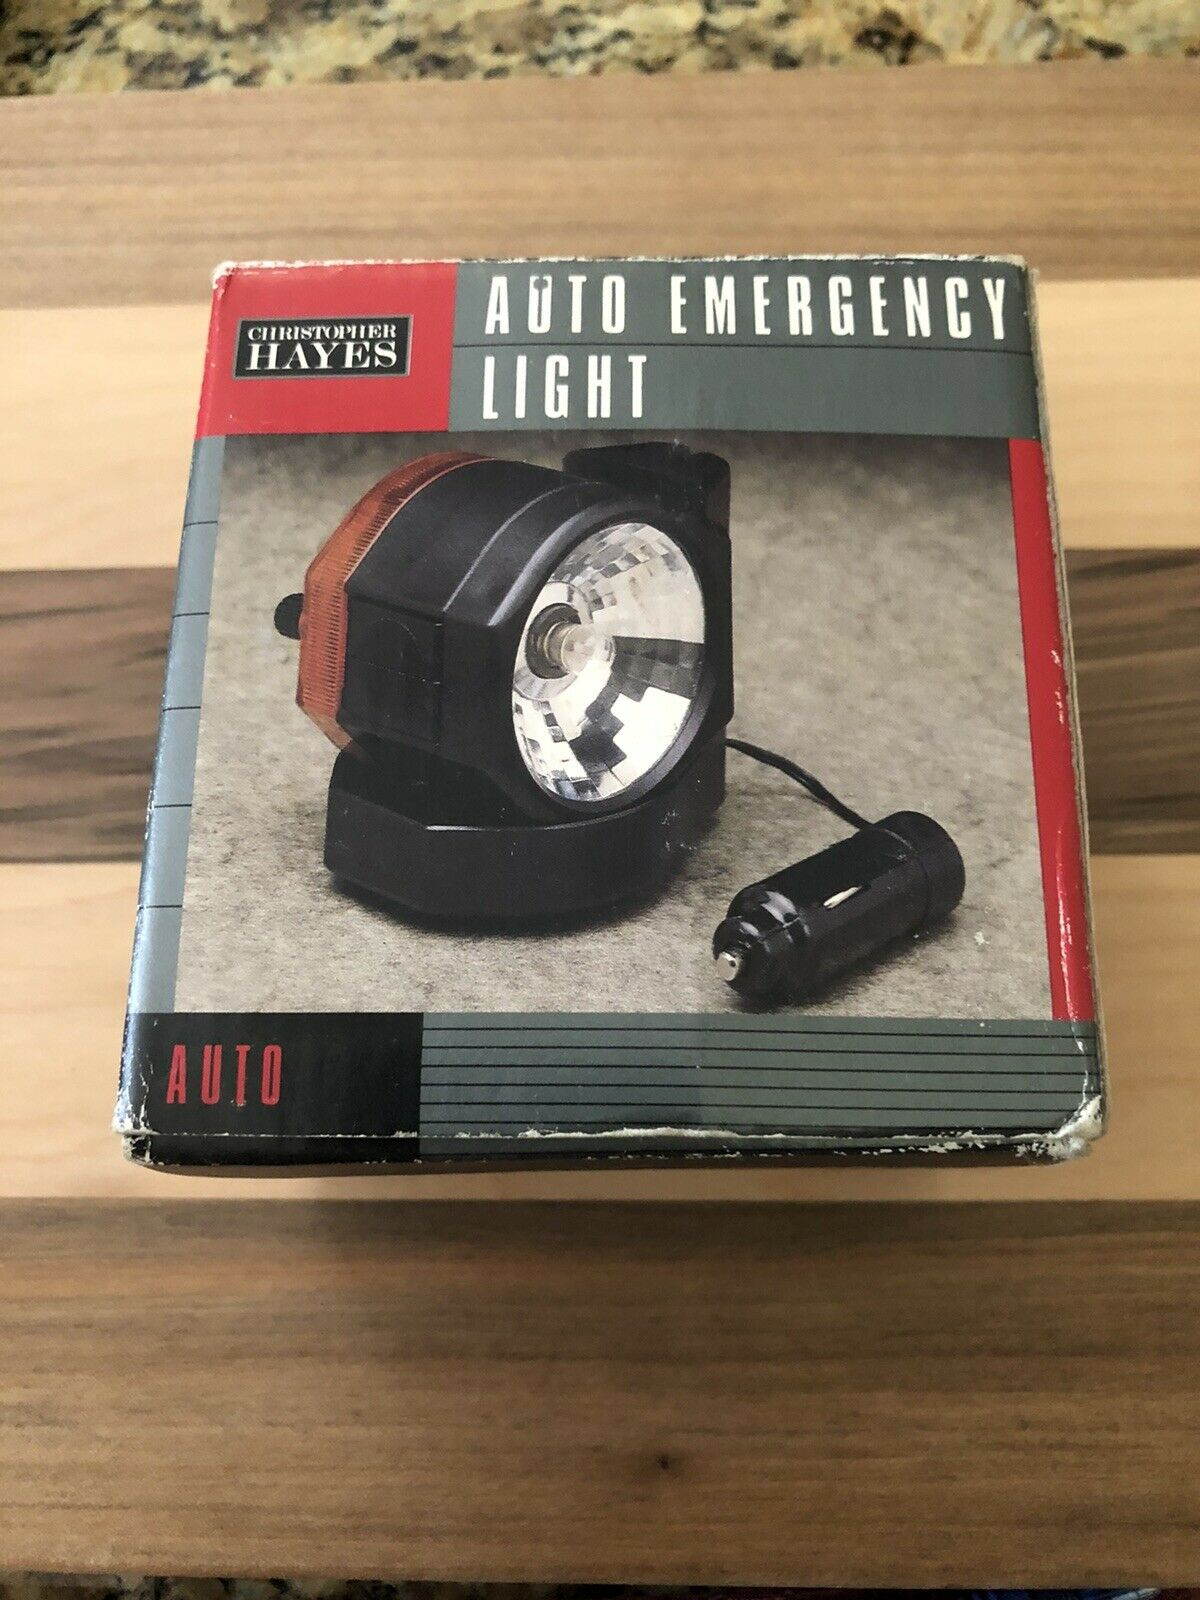 Auto Emergency Light - Mfr. Christopher Hayes - Old New Stock